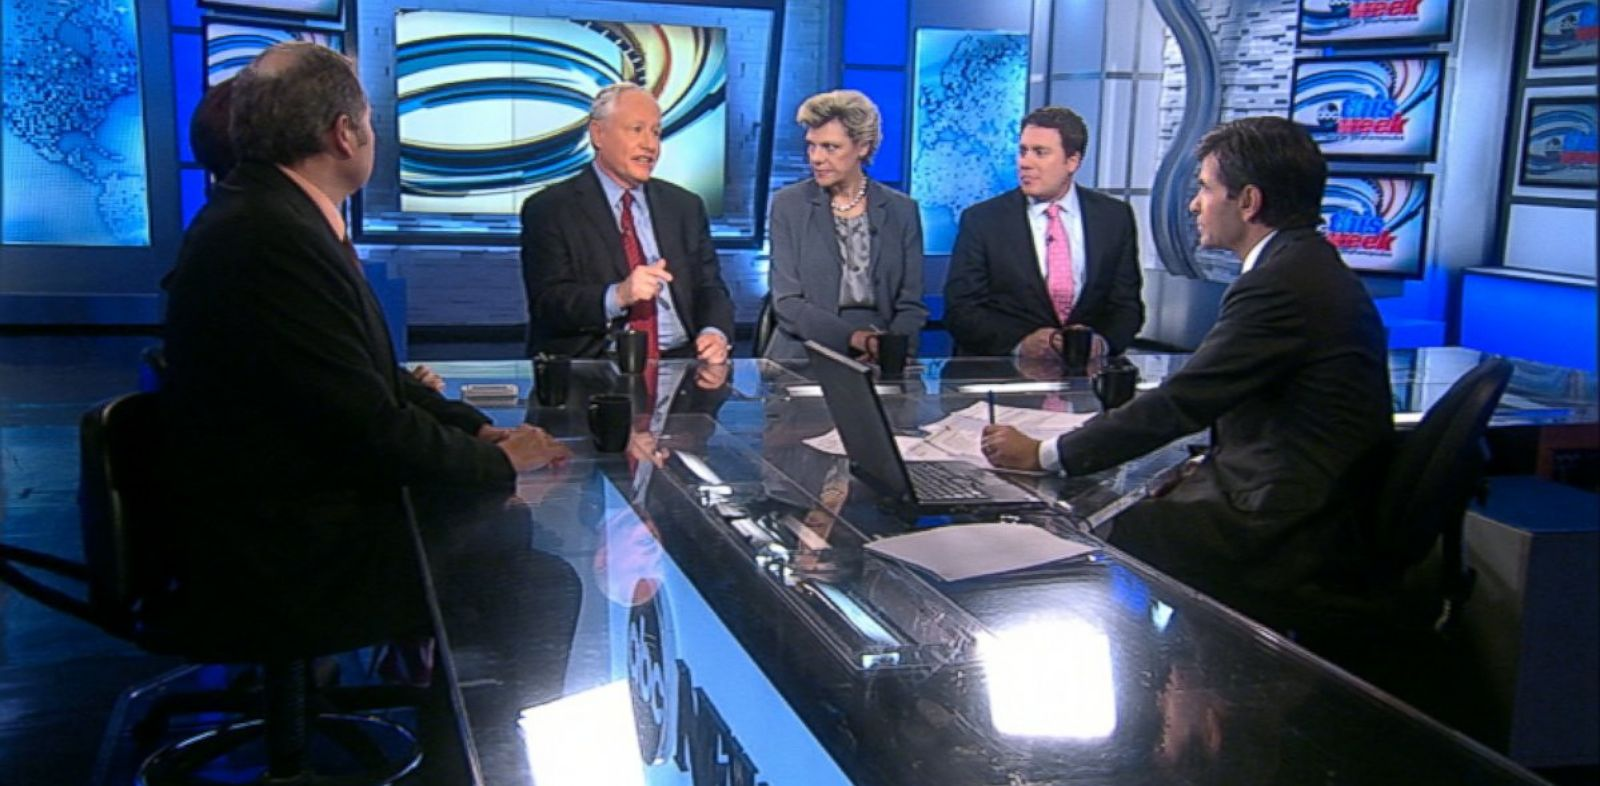 PHOTO: ABC News Cokie Roberts, The Weekly Standard Editor Bill Kristol, Republican Strategist and CNN Contributor Ana Navarro, Former Montana Governor Brian Schweitzer, and BuzzFeed.com Editor-in-Chief Ben Smith on This Week